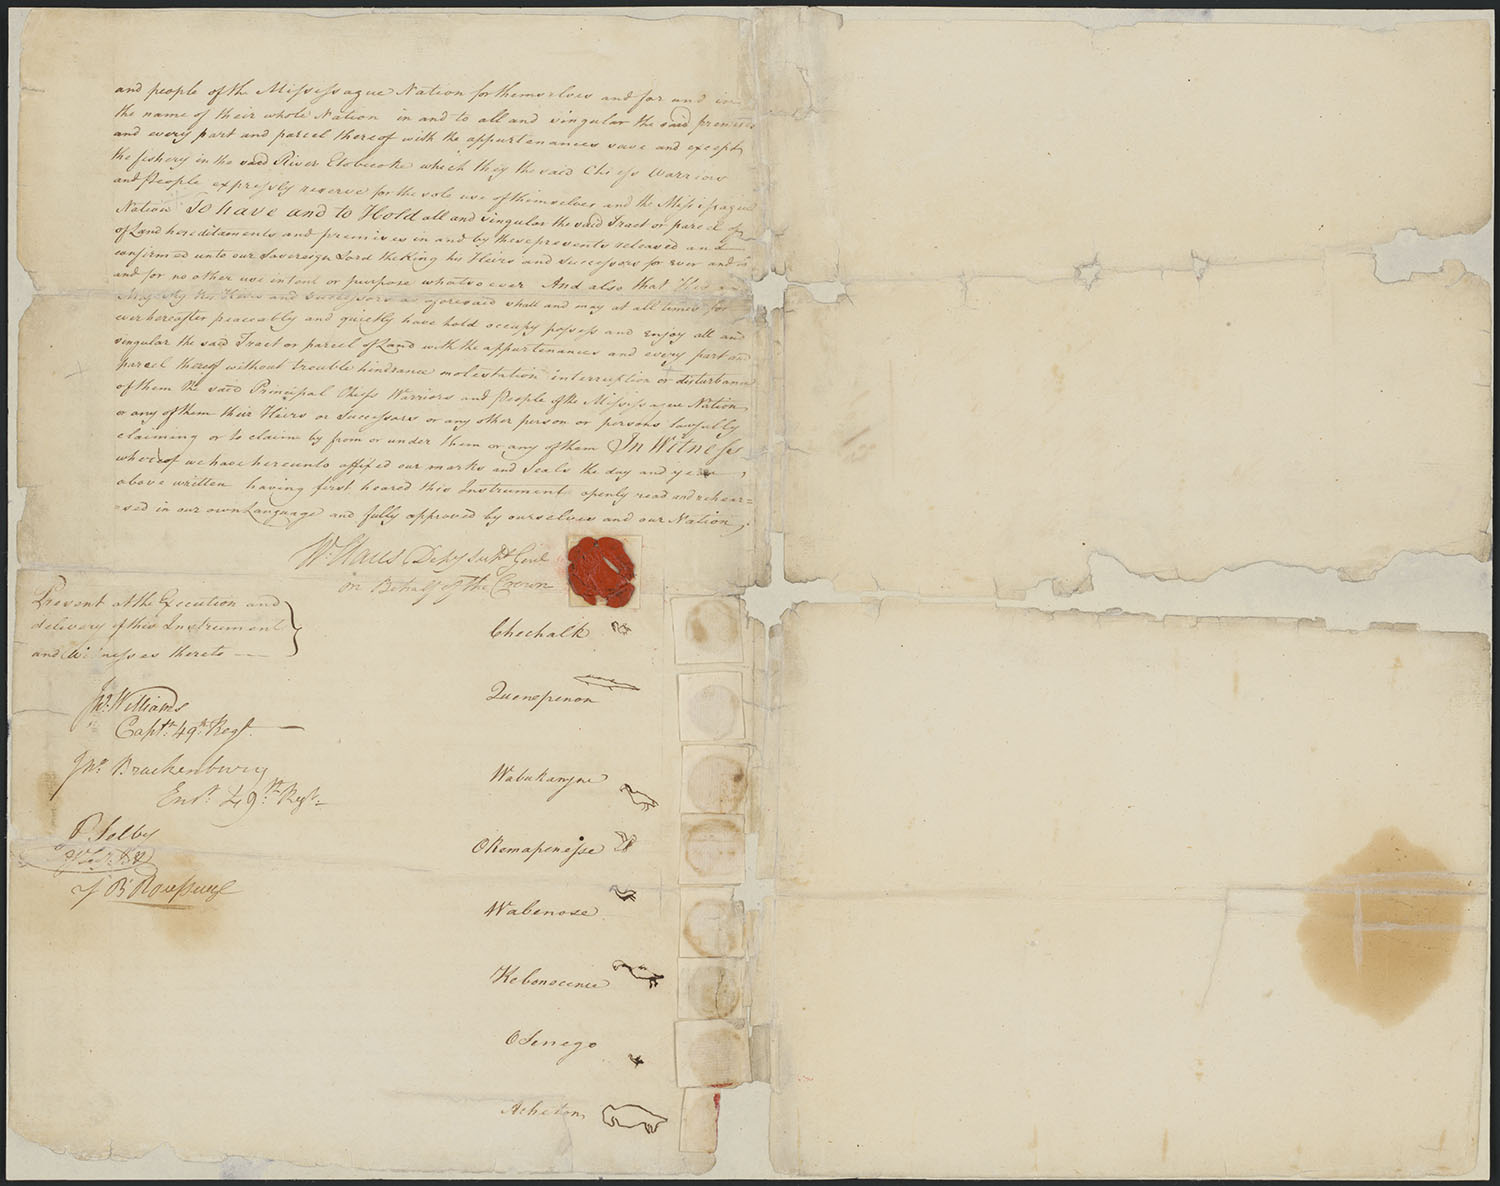 Original Deed of Sale with Descriptive Plan Annexed from Eight Principal Chiefs and Warriors of the Mississague Nation of Indians for the Toronto Purchase Situated upon Lake Ontario